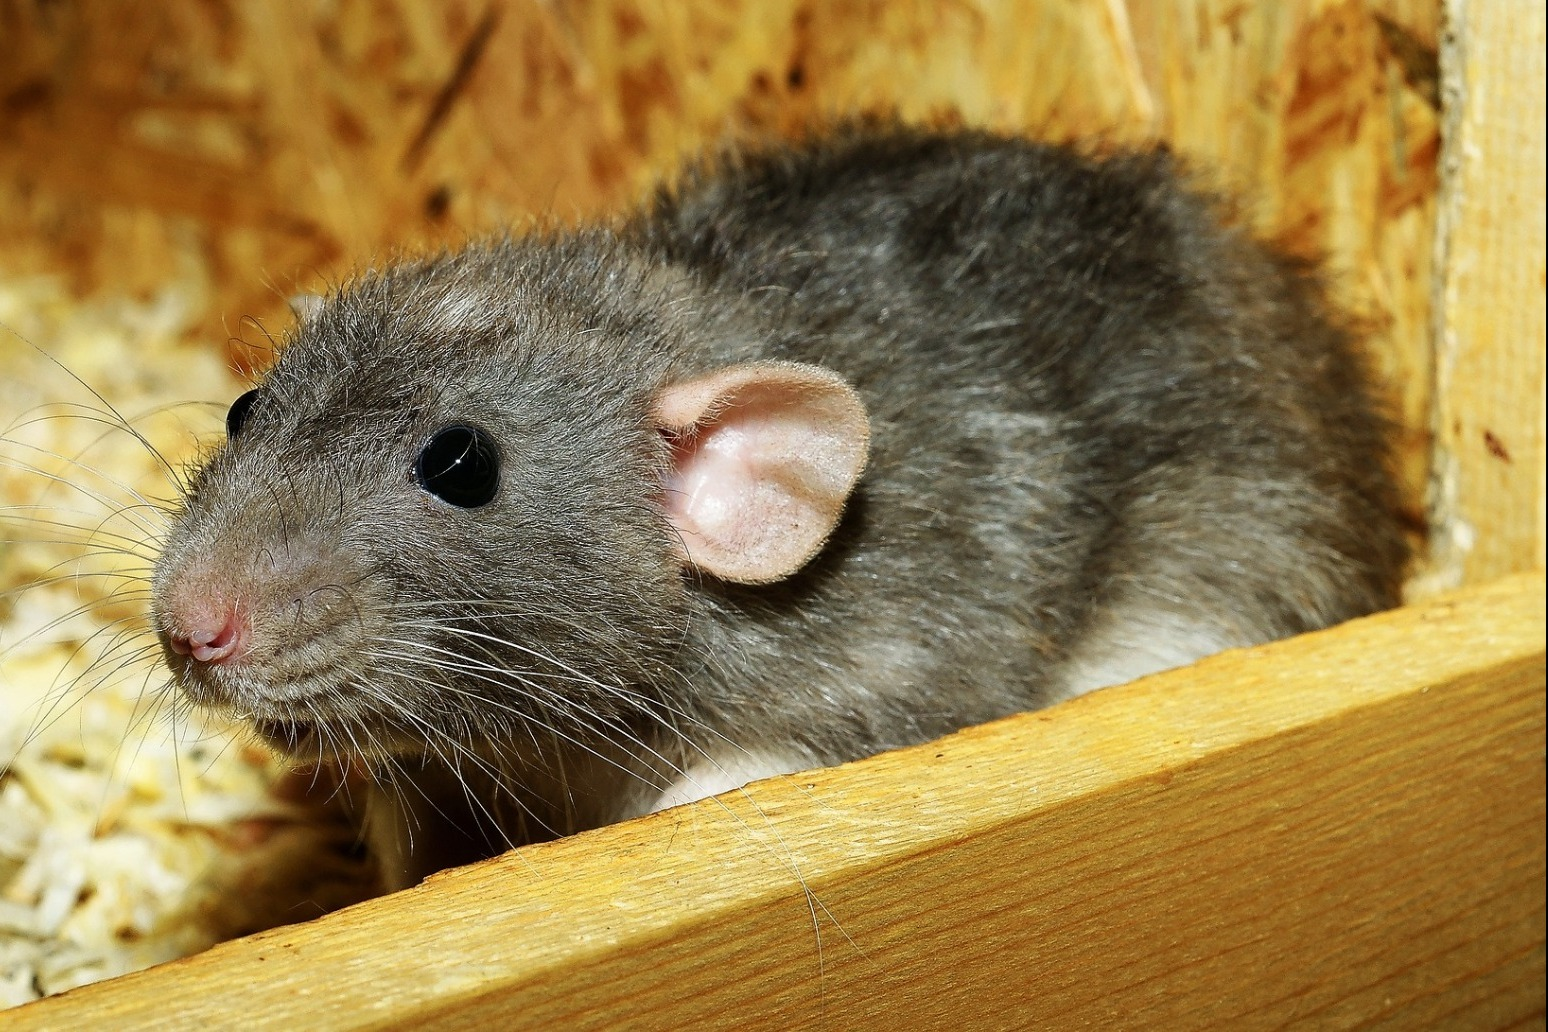 UK prison guards find rodents stuffed with drugs